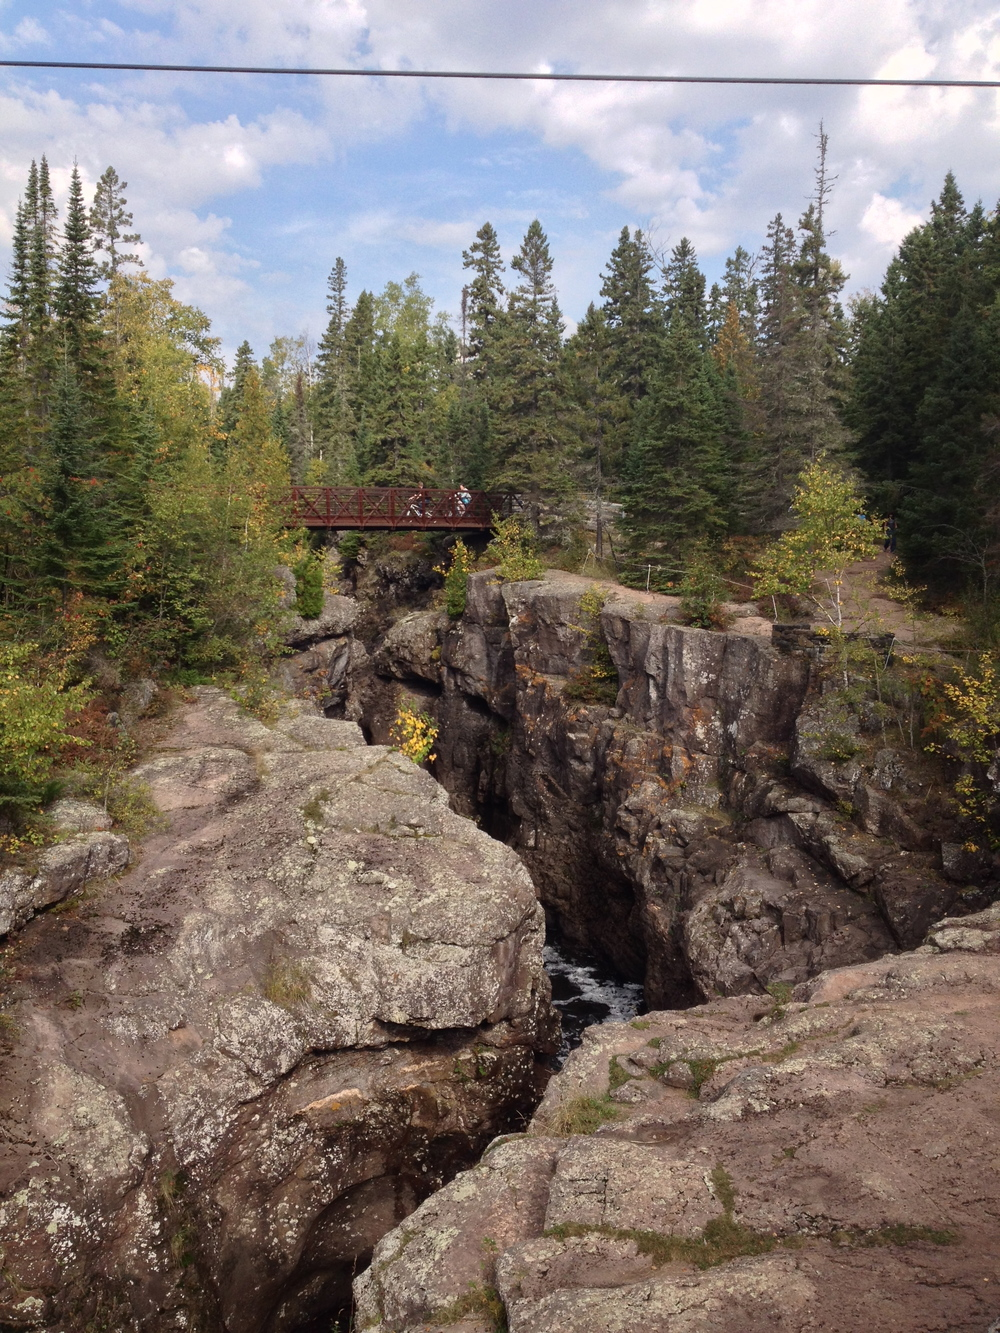 The gorge at Temperance River State Park